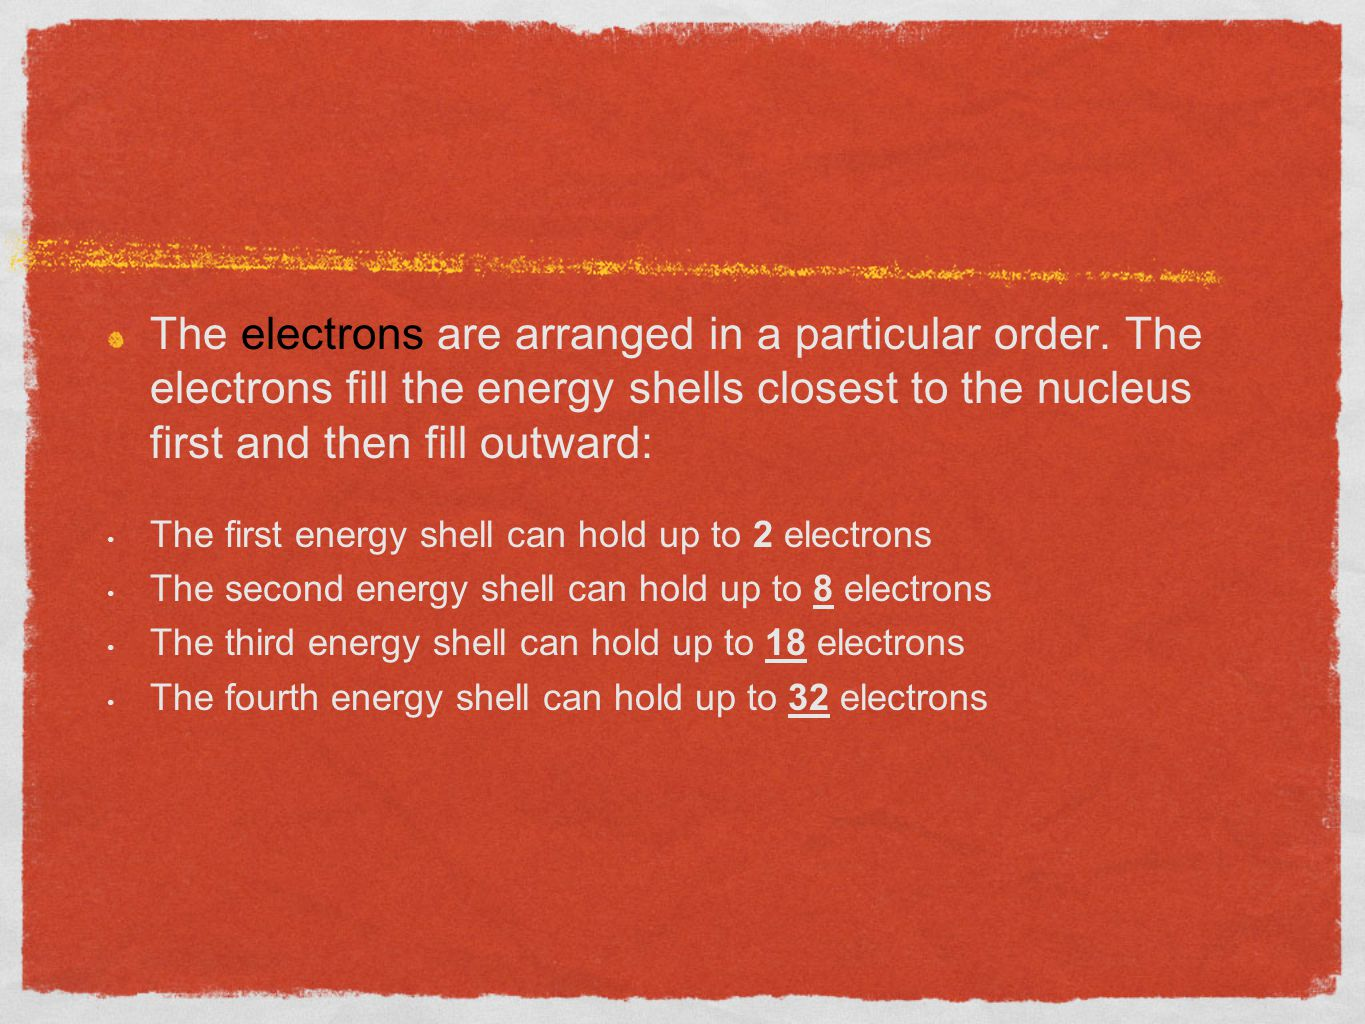 The electrons are arranged in a particular order